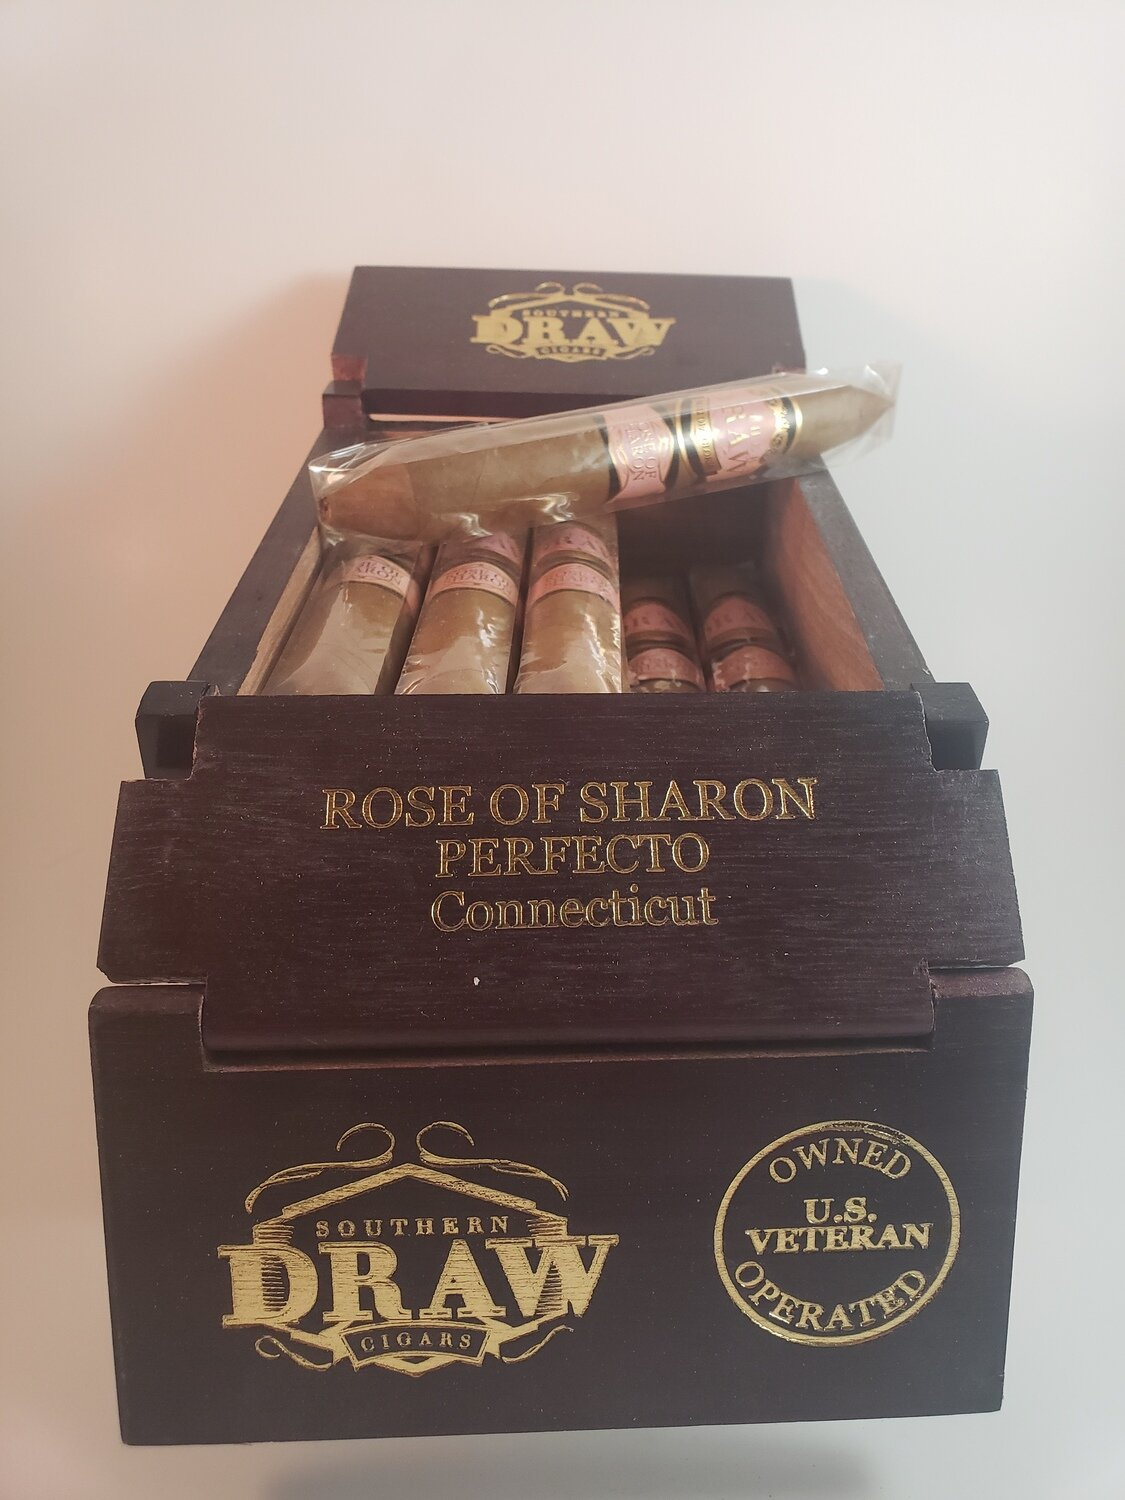 Southern Draw Rose of Sharon Robusto 5 1/2 x 54